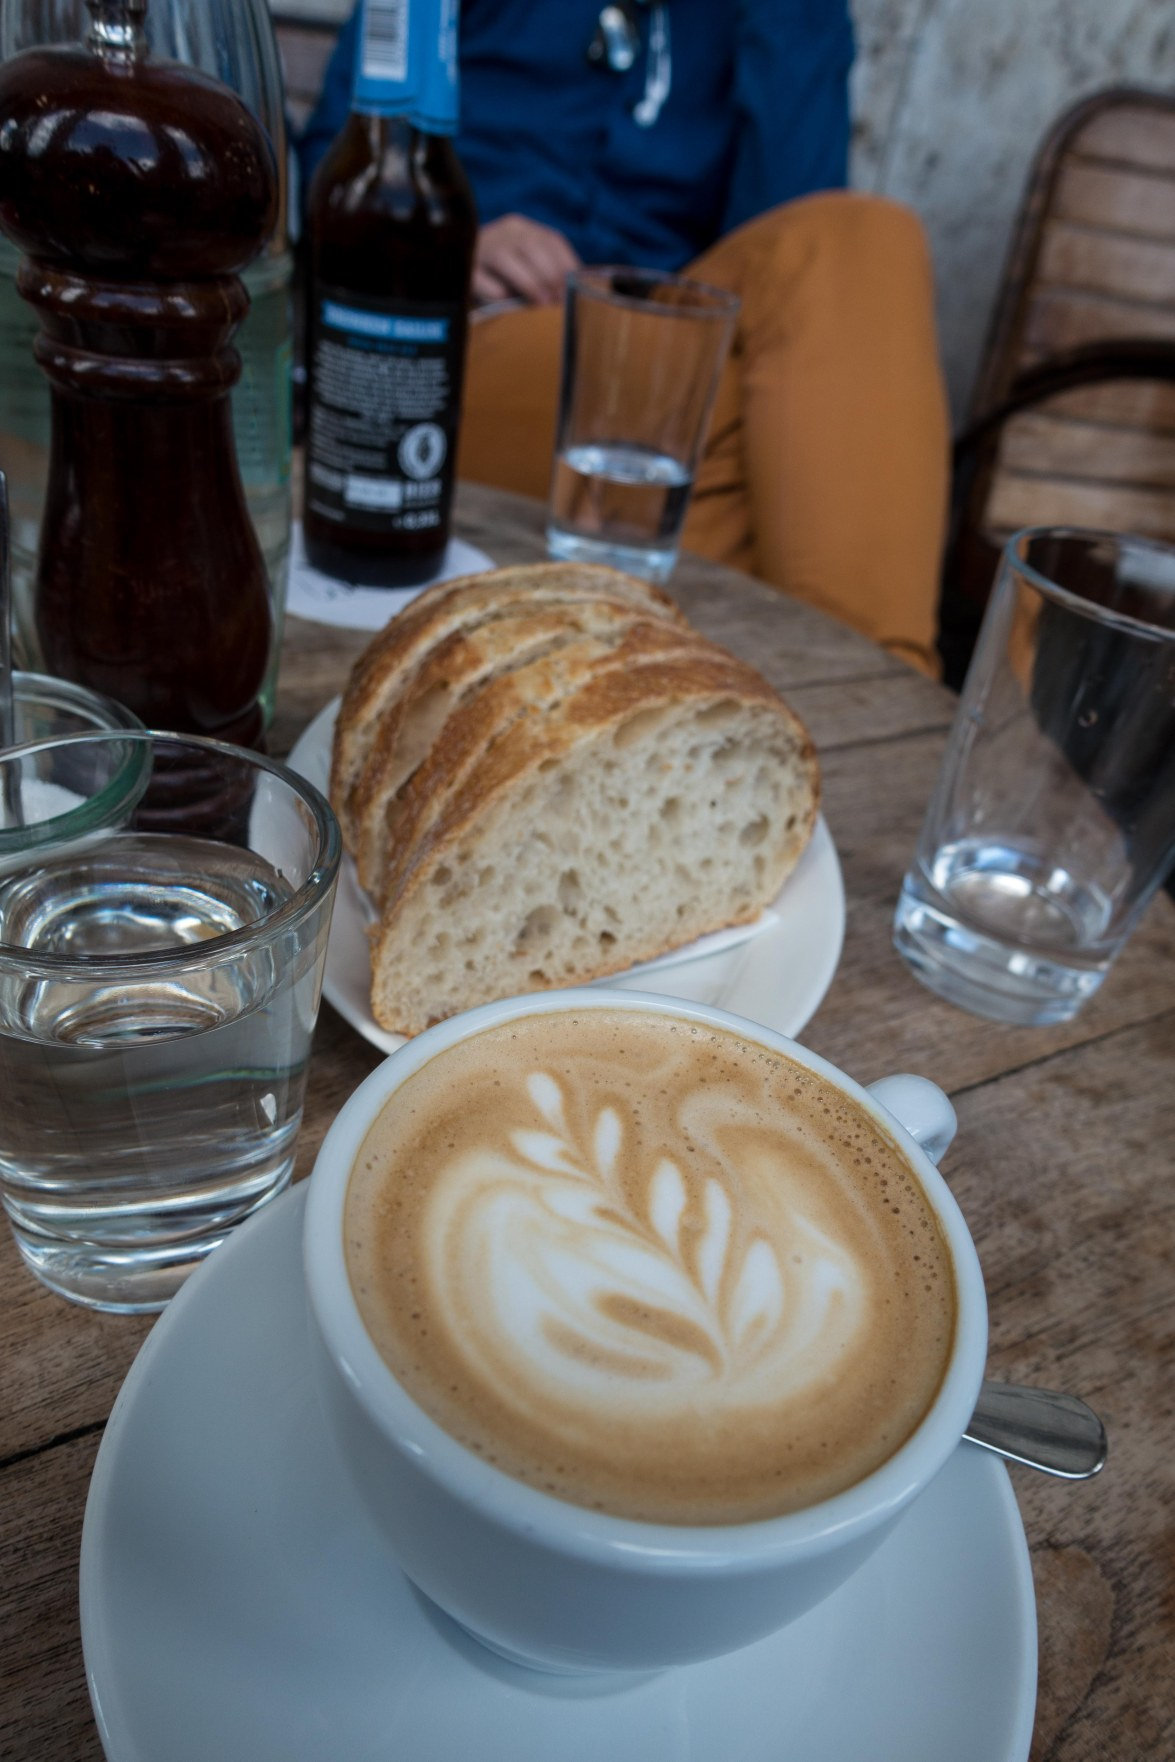 Even the coffee and bread are works of art in the museum cafe